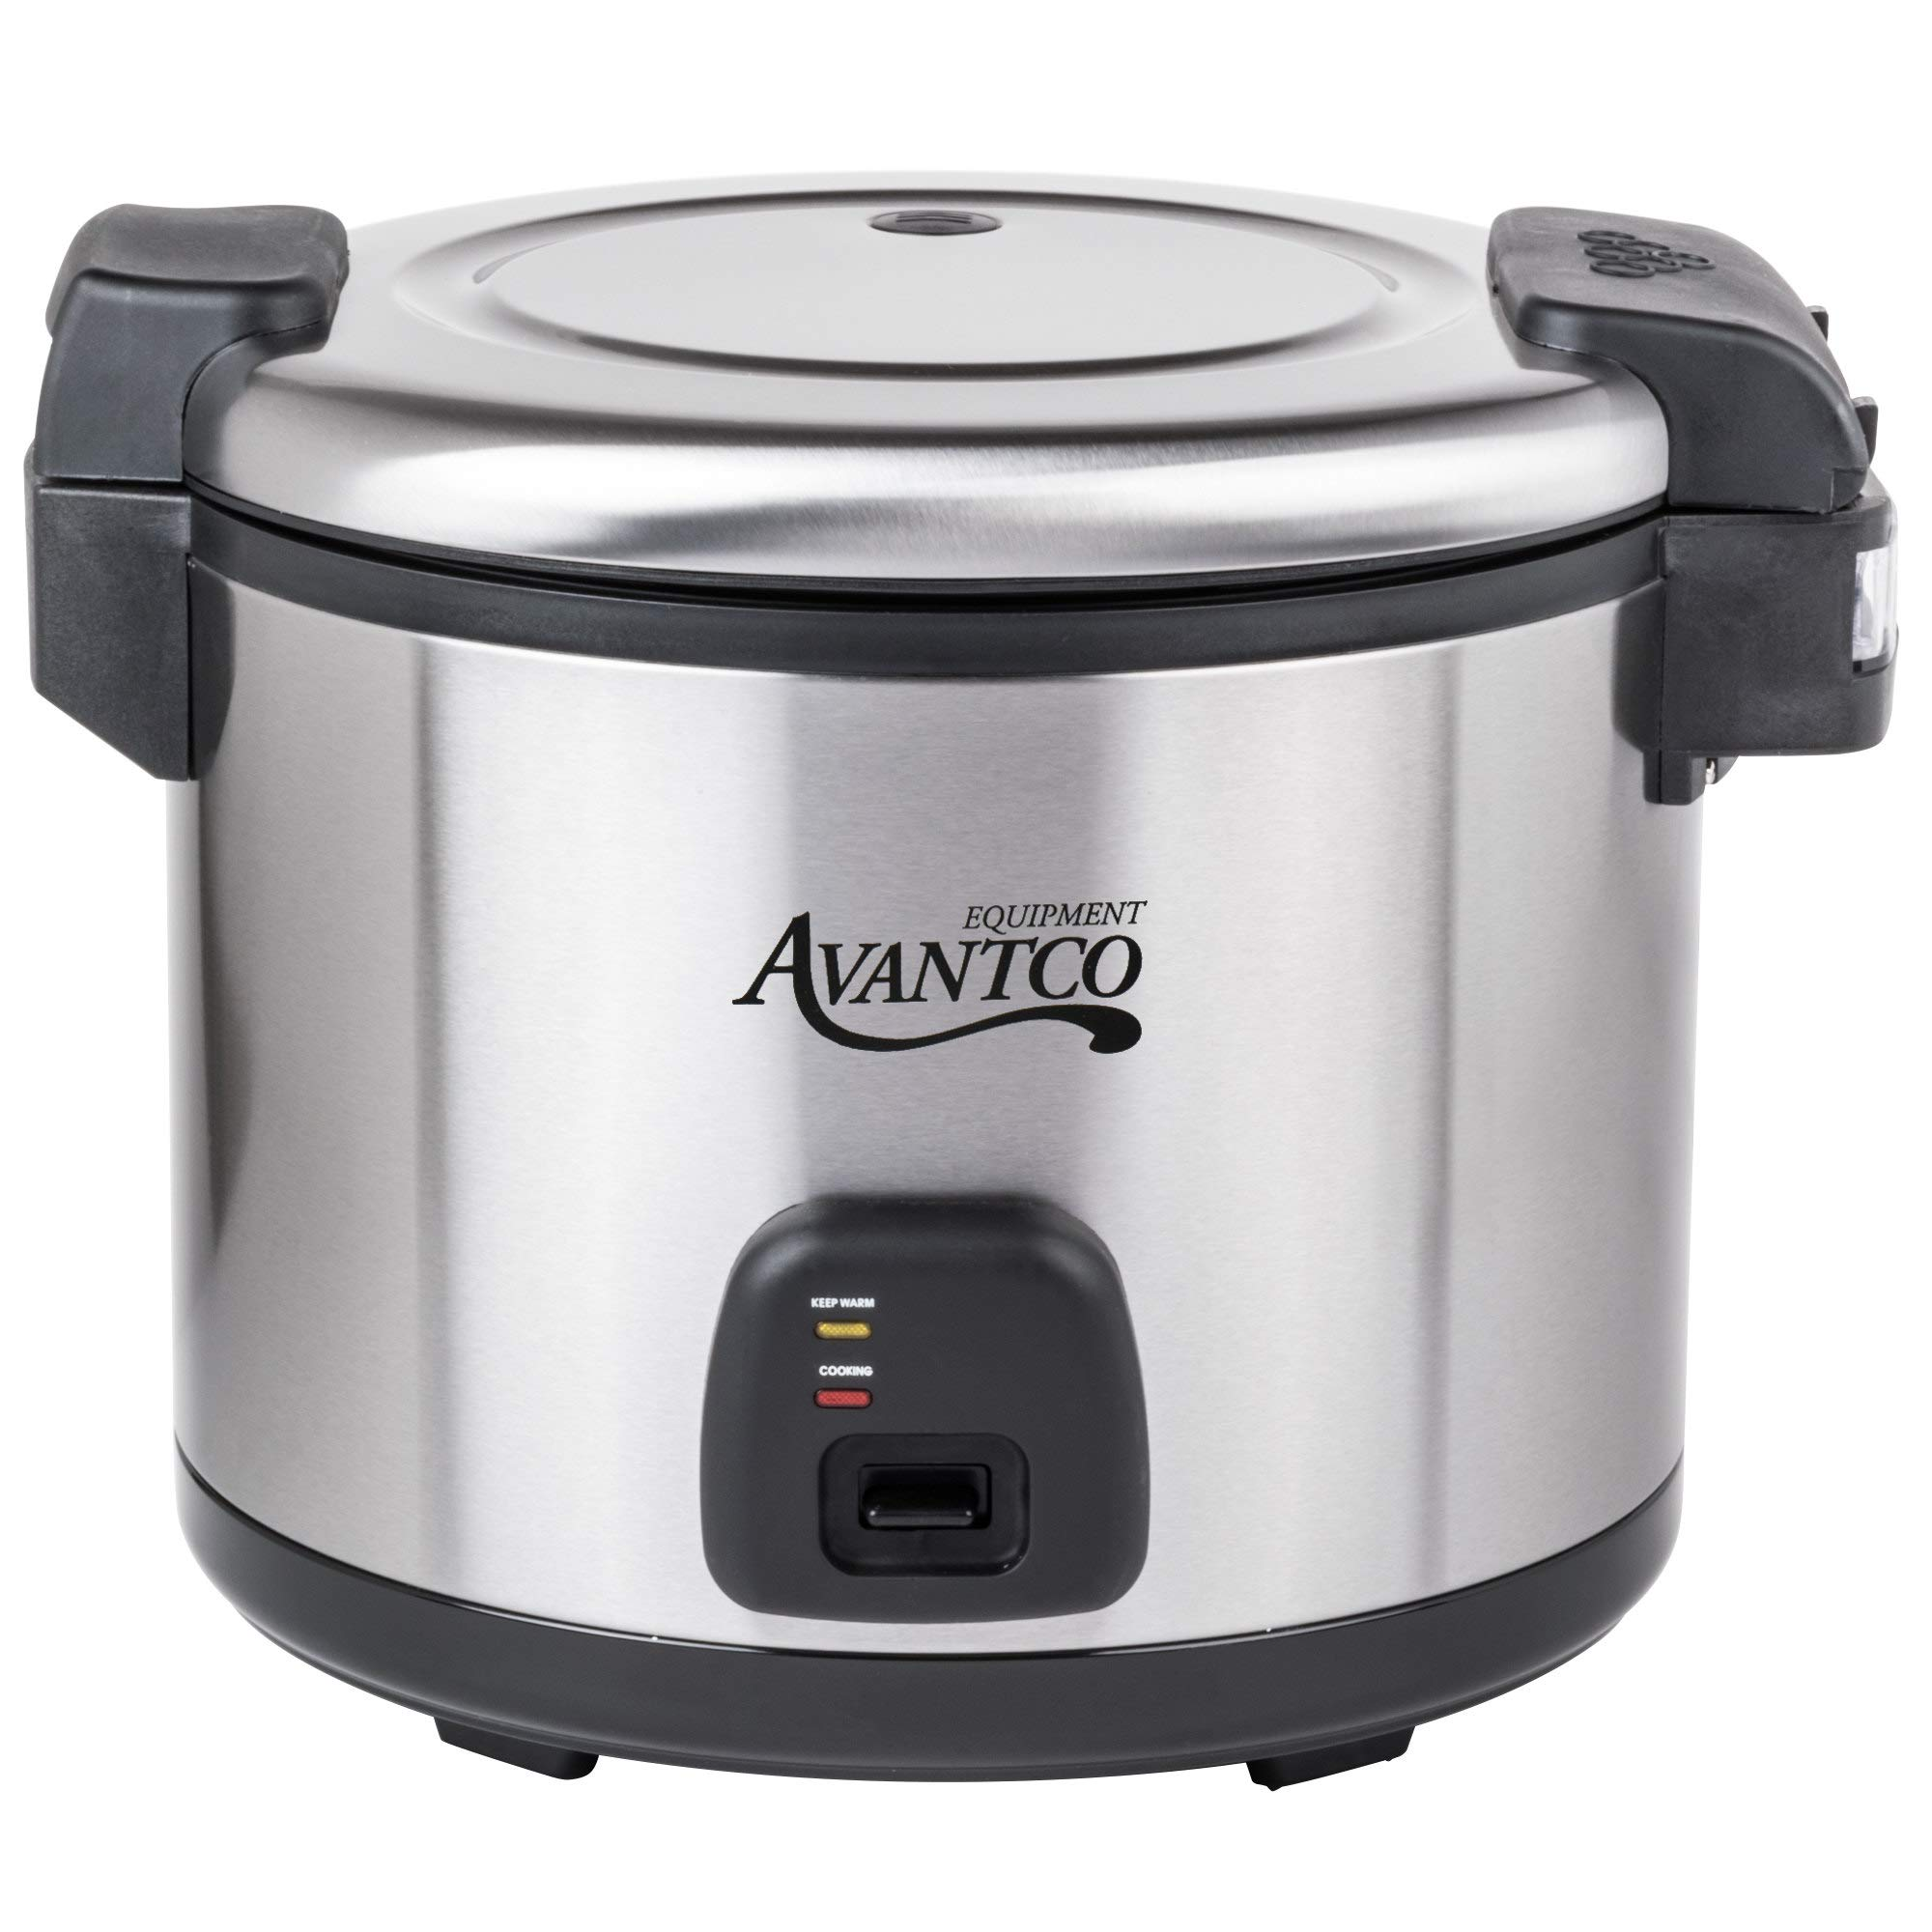 Avantco RC60 60 Cup (30 Cup Raw) Electric Rice Cooker/Warmer - Stainless Steel 120V, 1550W